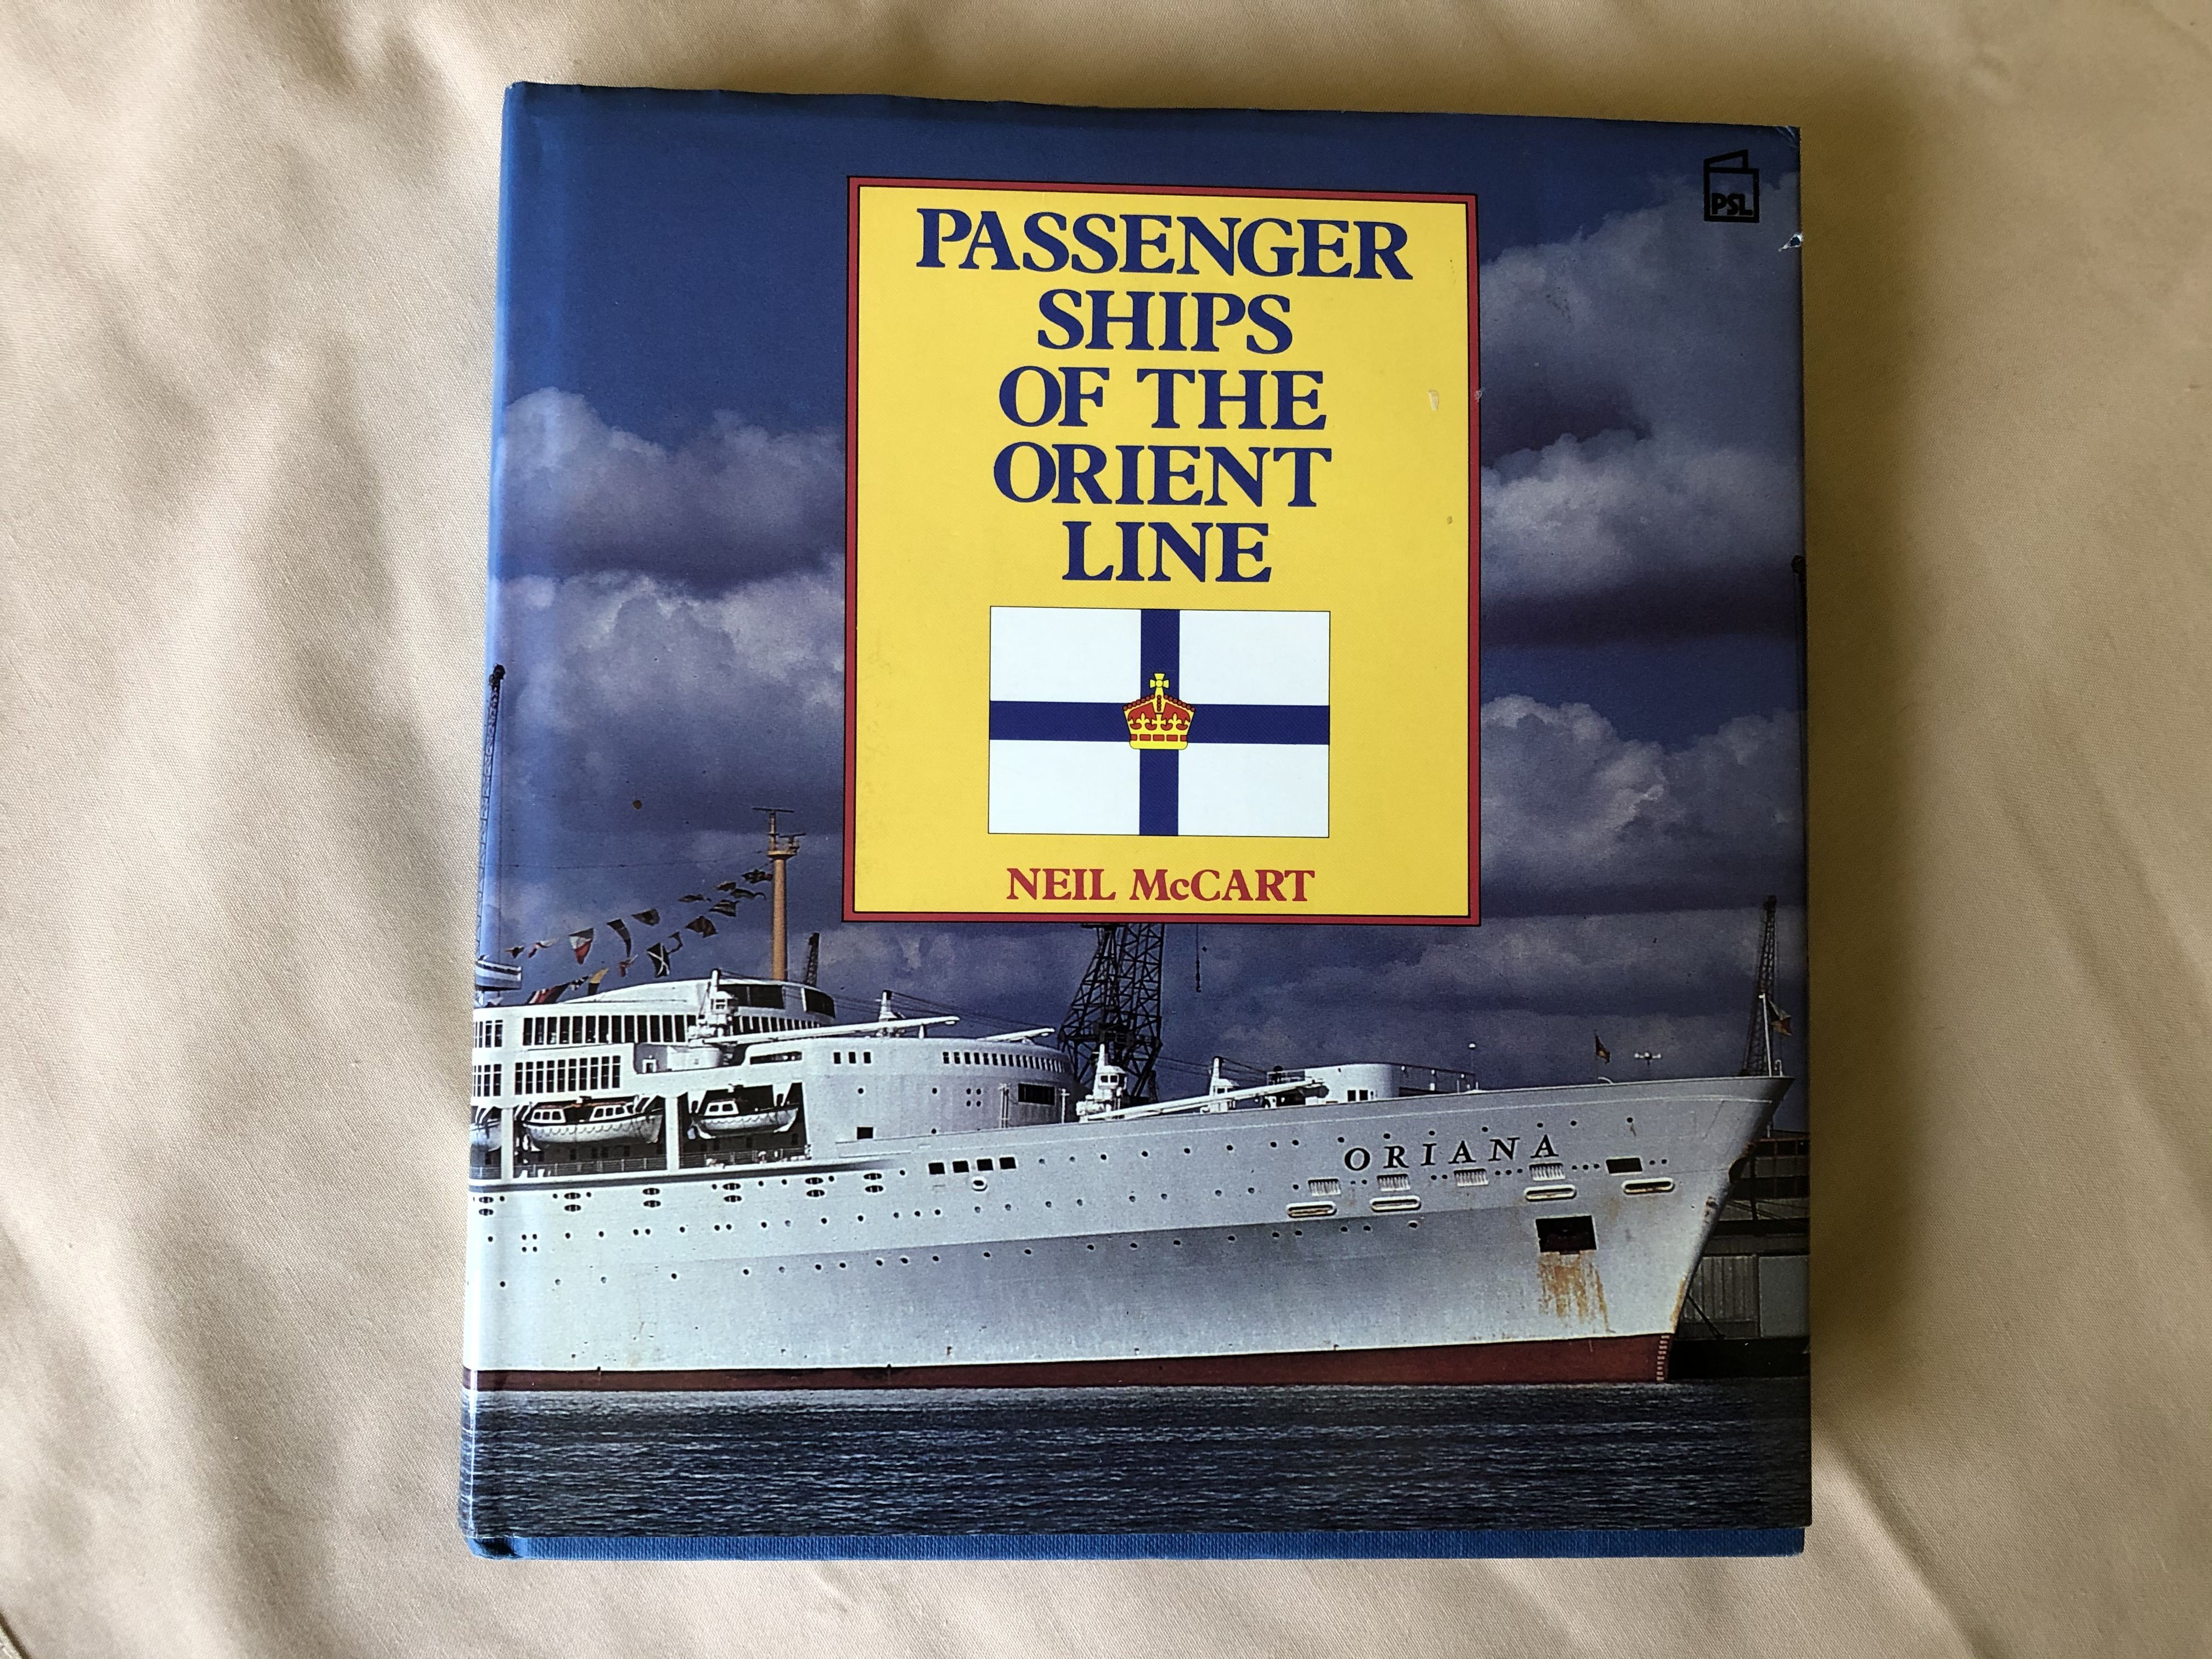 BOOK ENTITLED 'PASSENGER SHIPS OF THE ORIENT LINE' BY NEIL McCART